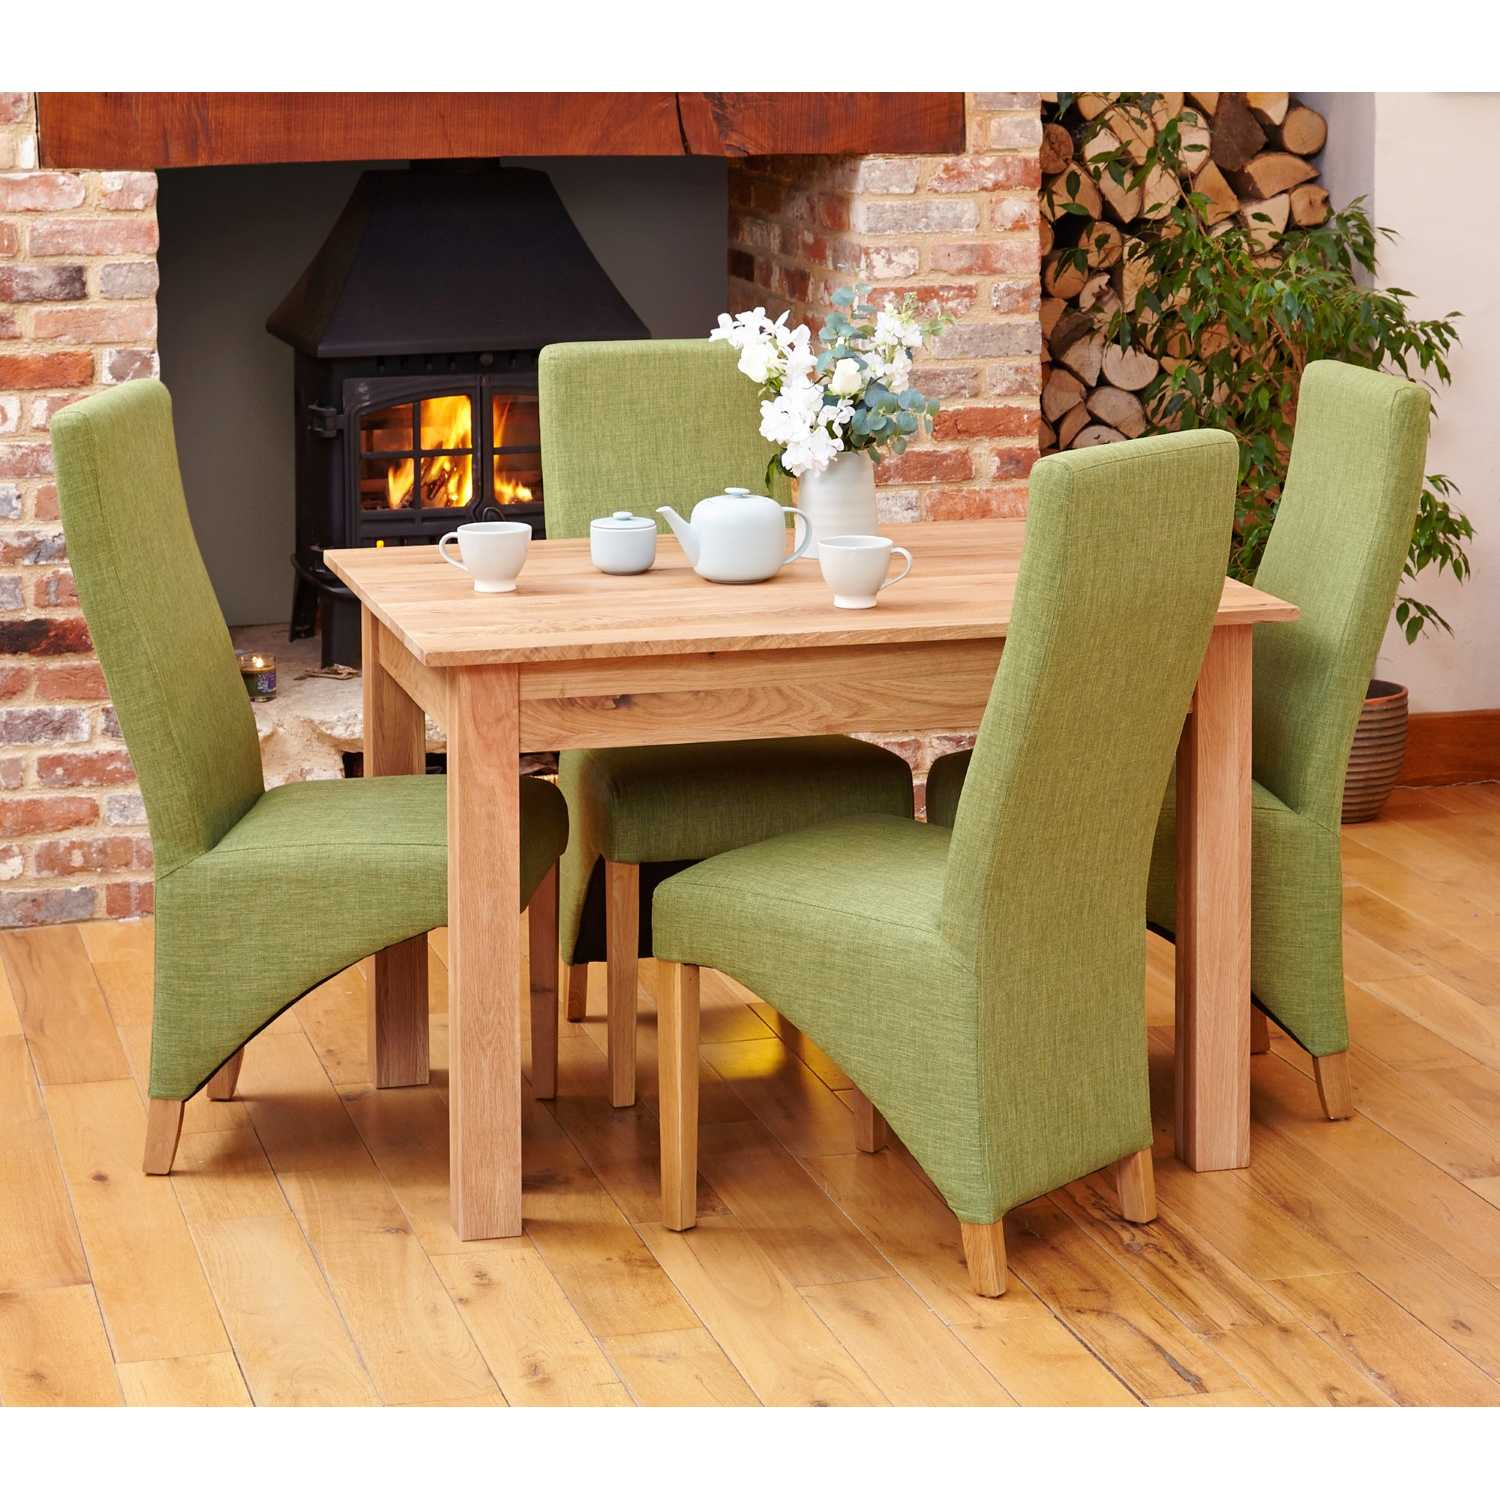 Small Solid Light Oak Kitchen Dining Table 120cm X 90cm 4 Seater